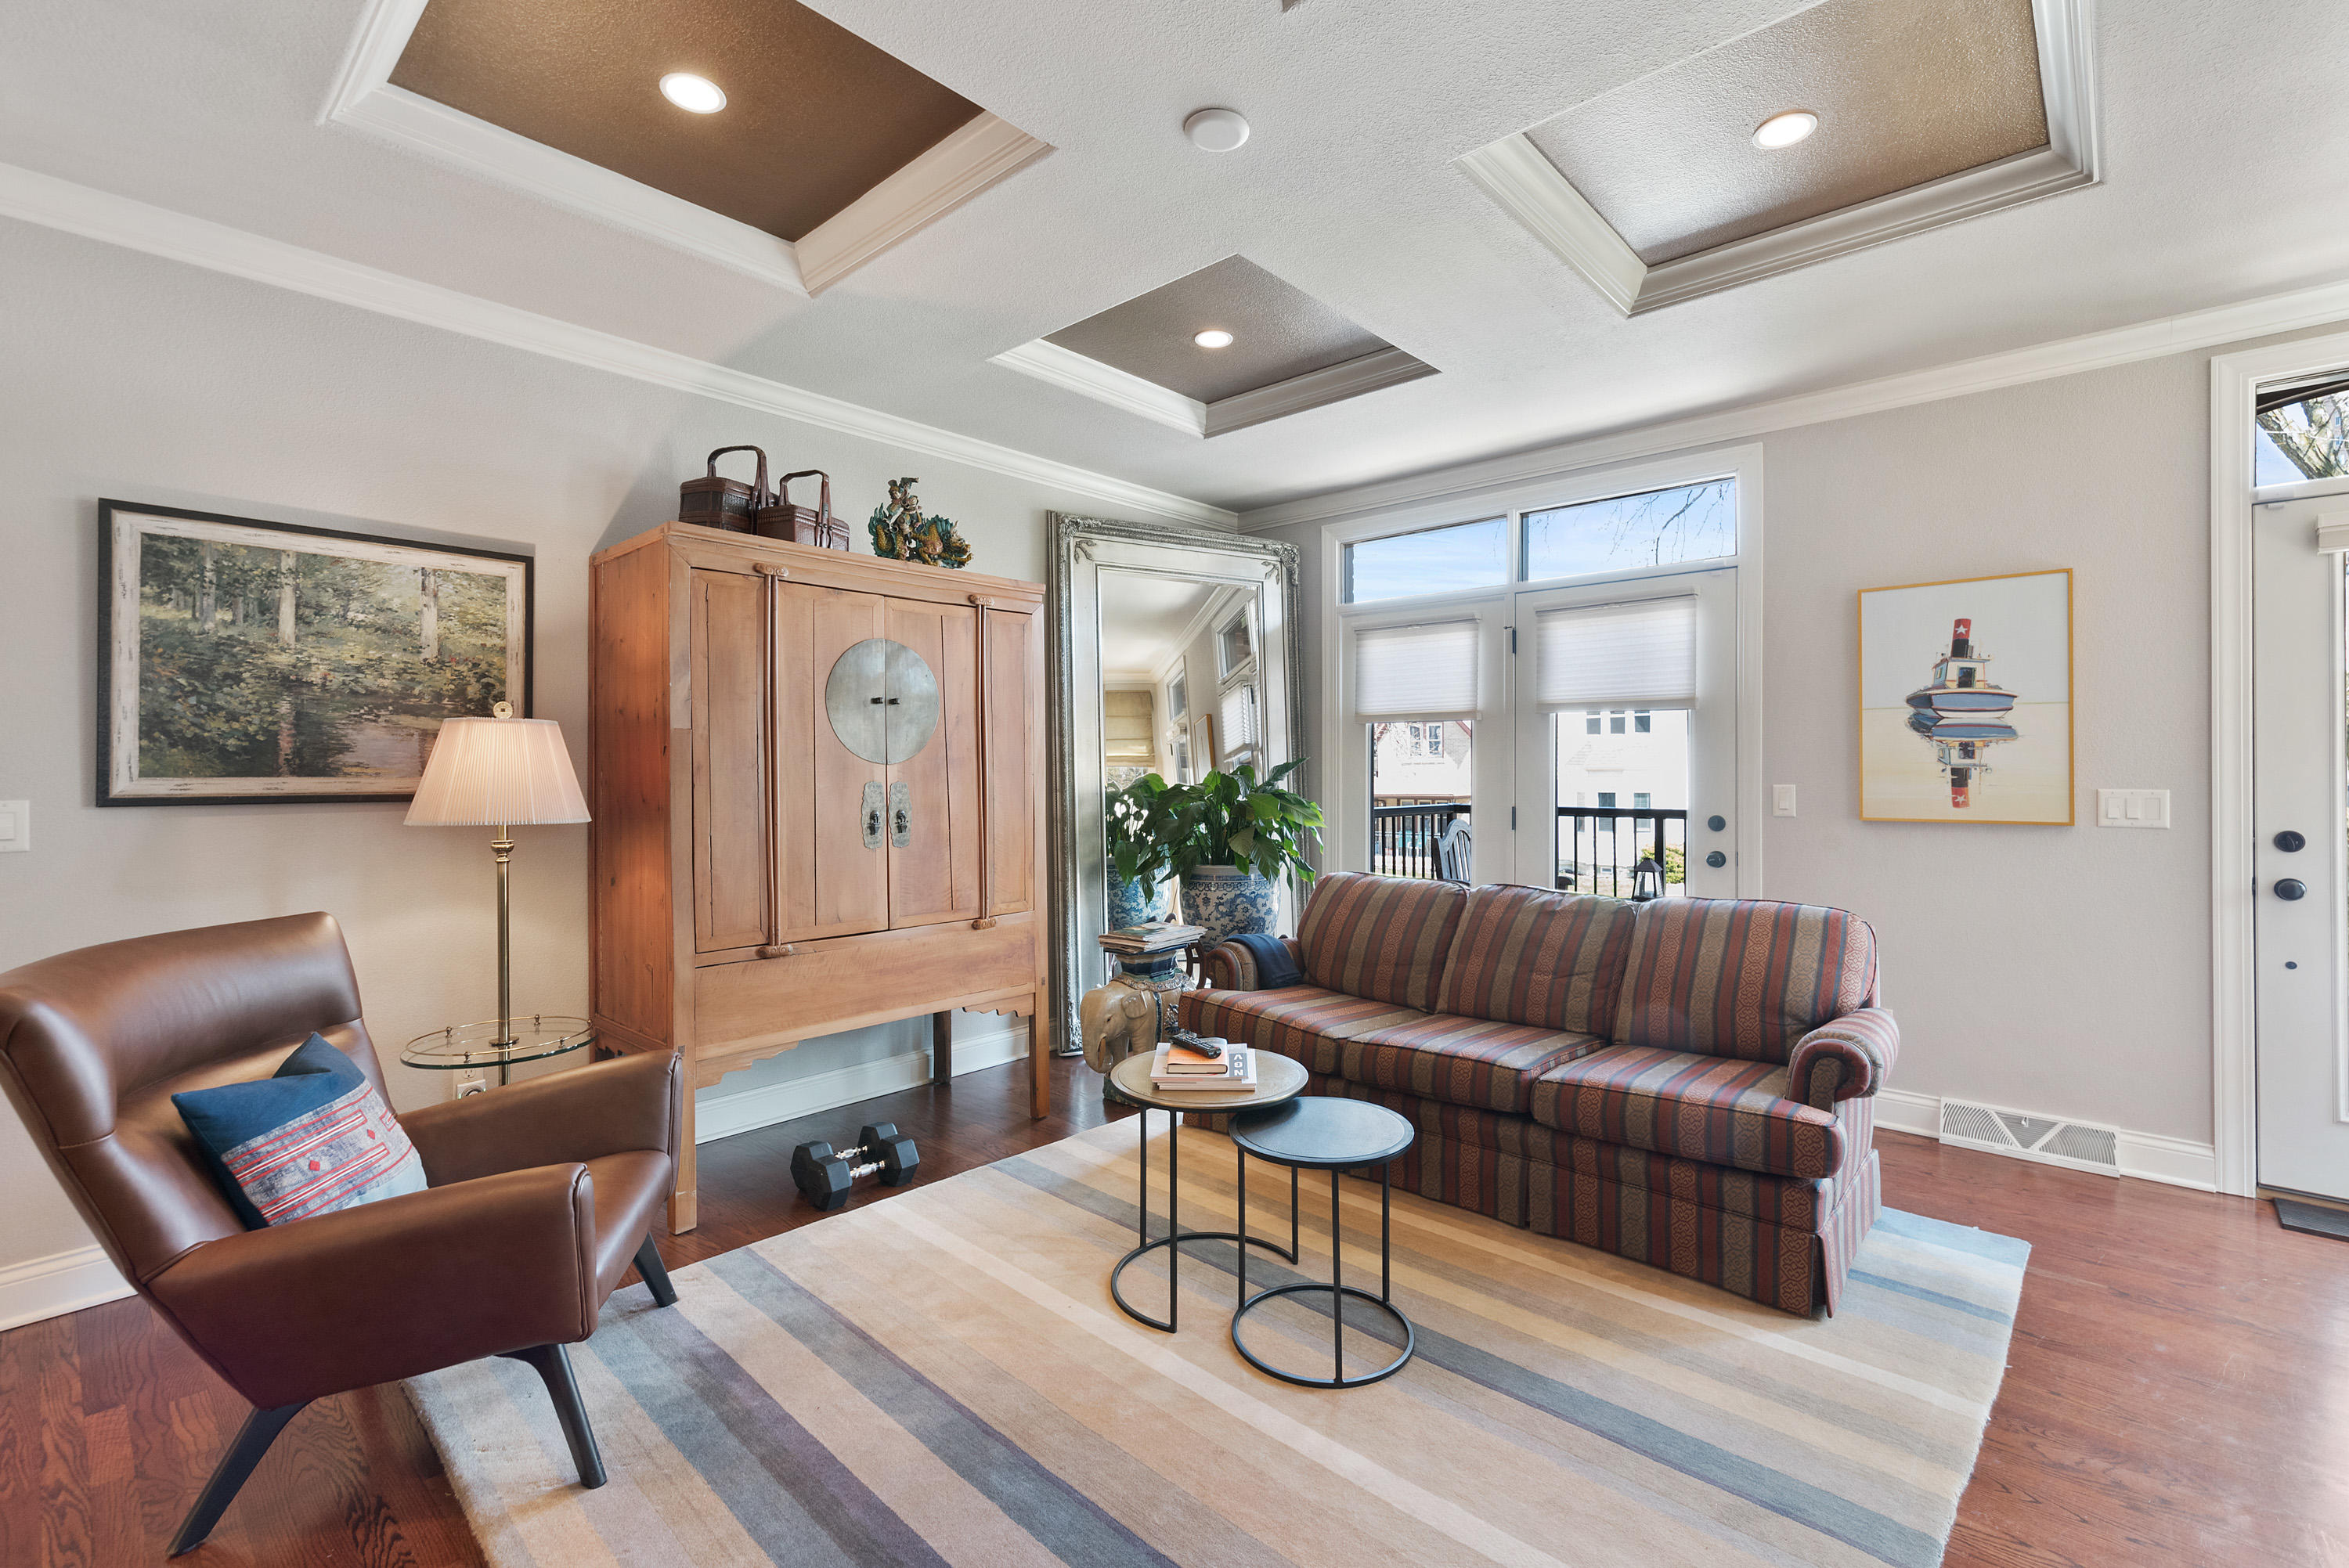 Accent Lighting Throughout Home